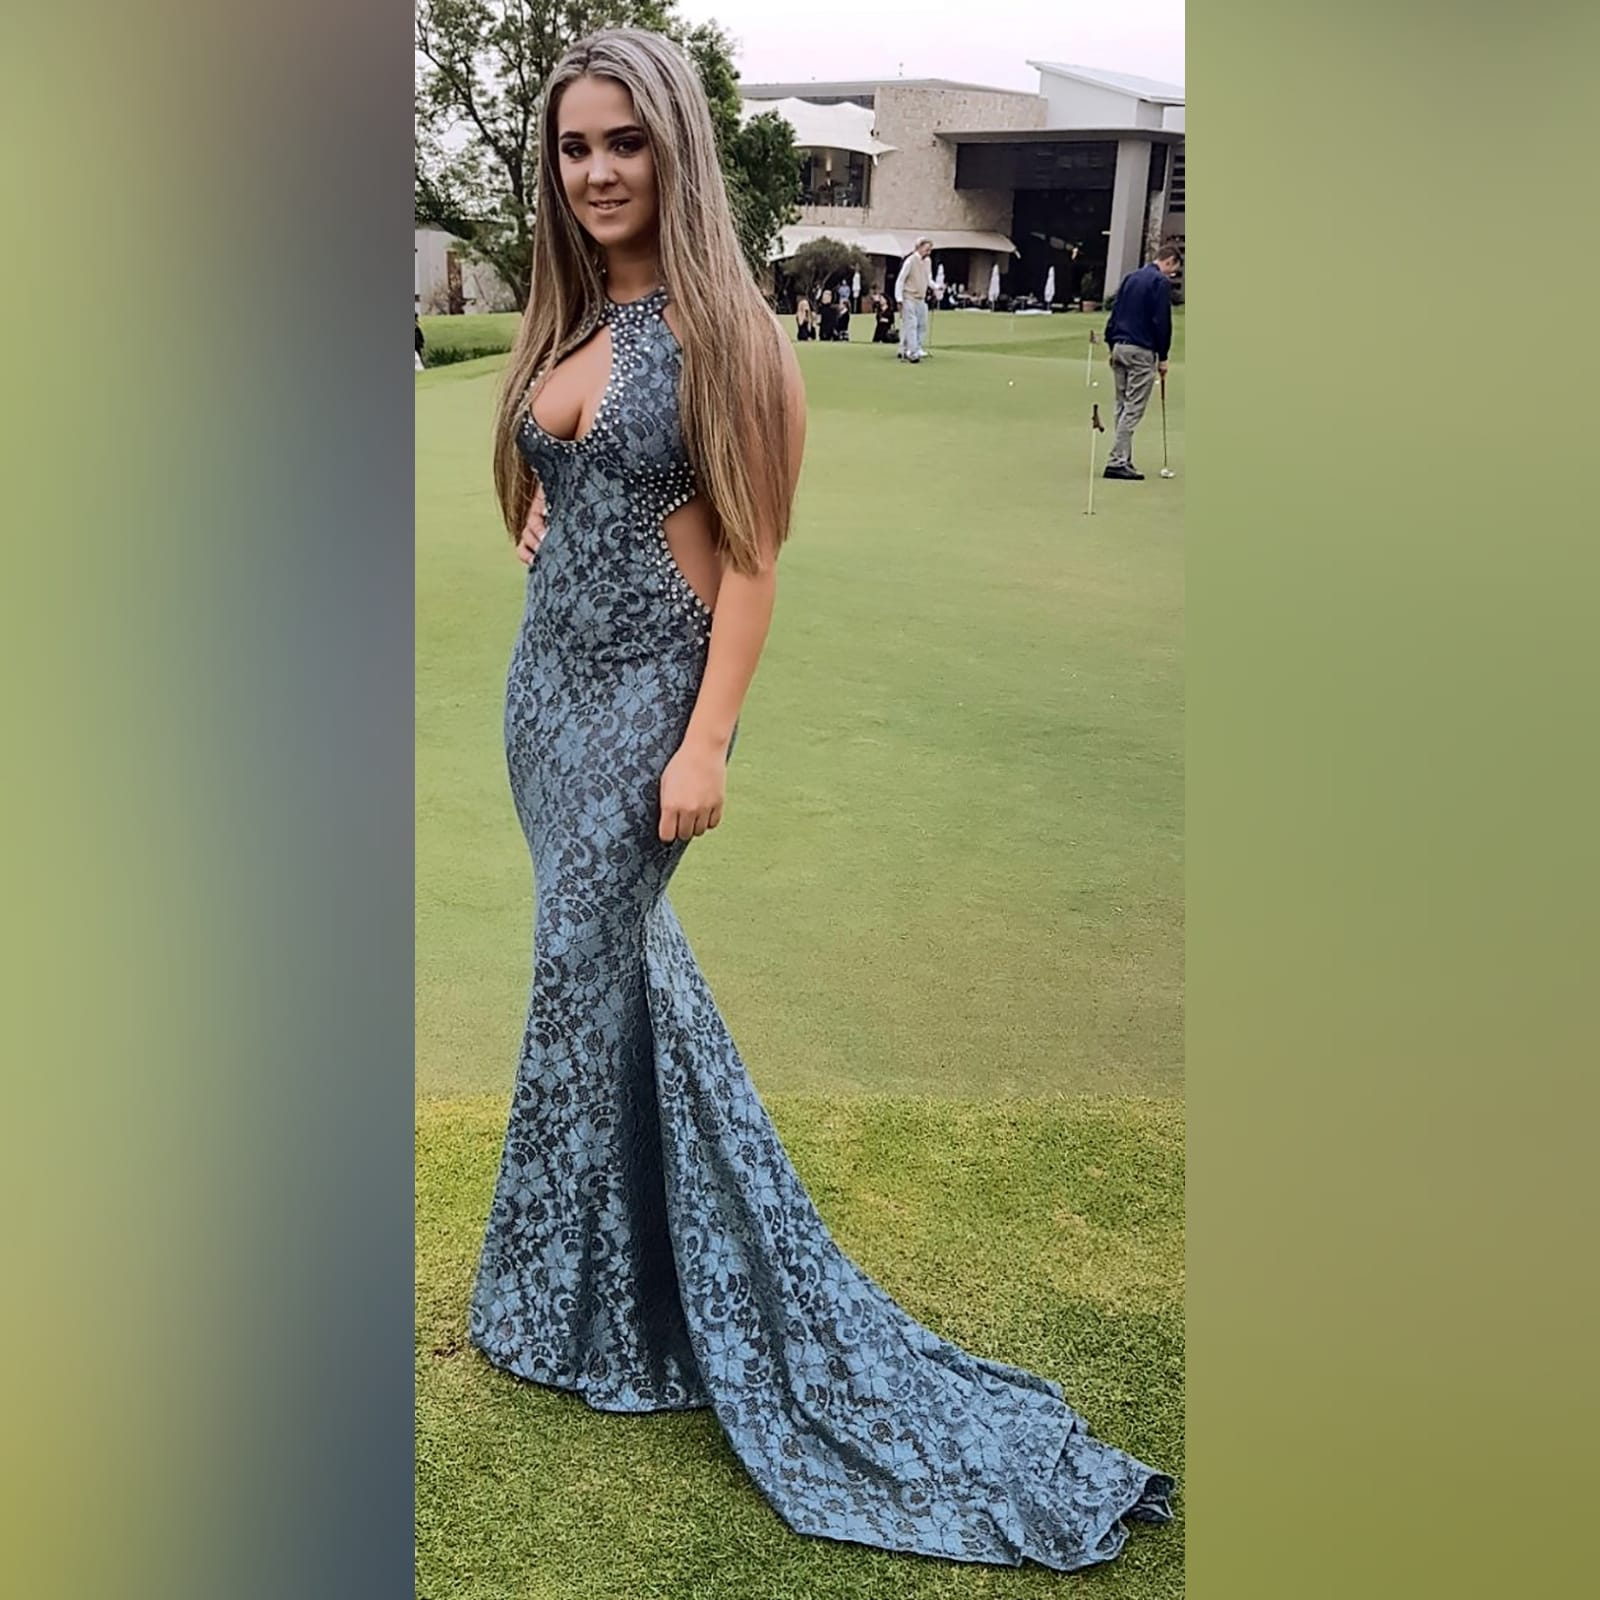 Choker gray fully laced long prom dress 1 gray fully laced long prom dress with a choker neckline and a cleavage opening and side tummy openings with a train. Detailed with silver beads.